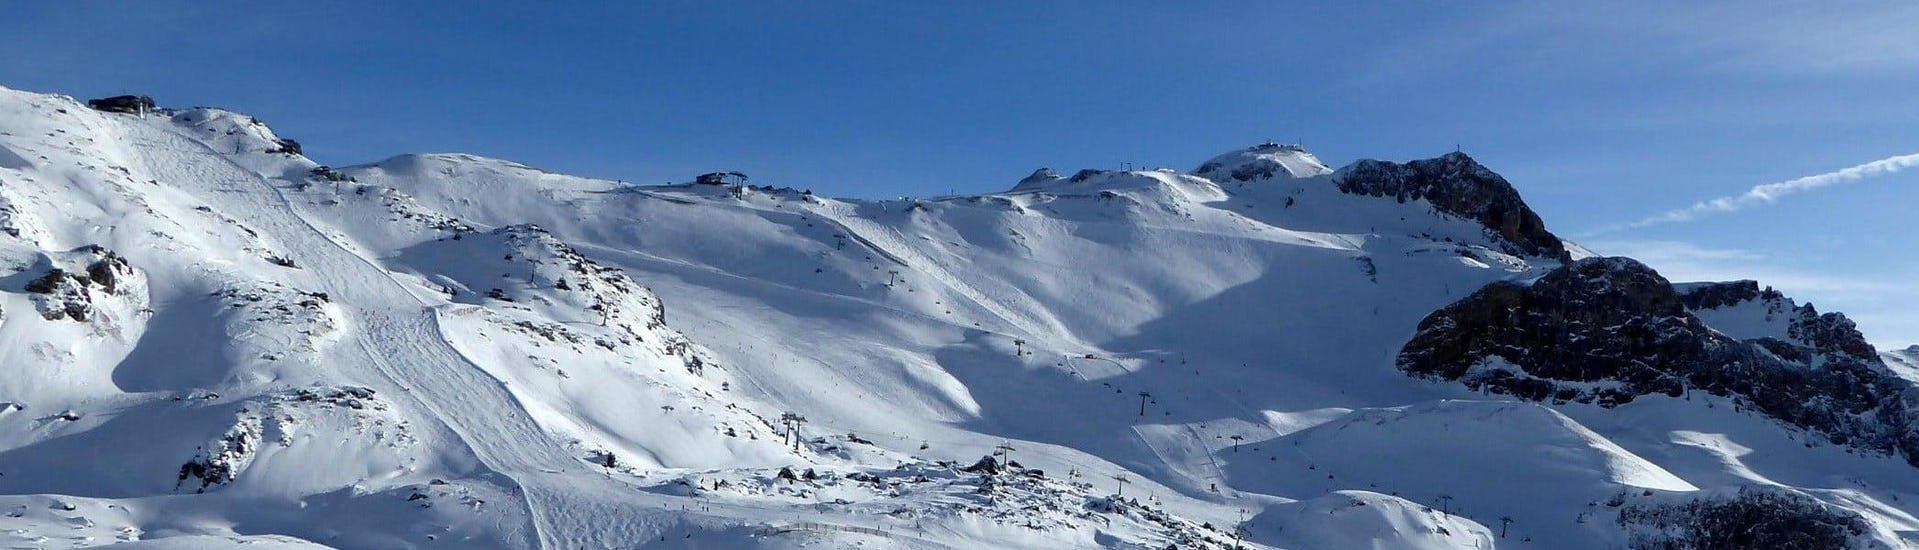 View of a snowy mountainscape in the ski resort of Ischgl with ski pistes offering perfect conditions for the local ski schools to offer their ski lessons.  (c)Skiresort.de